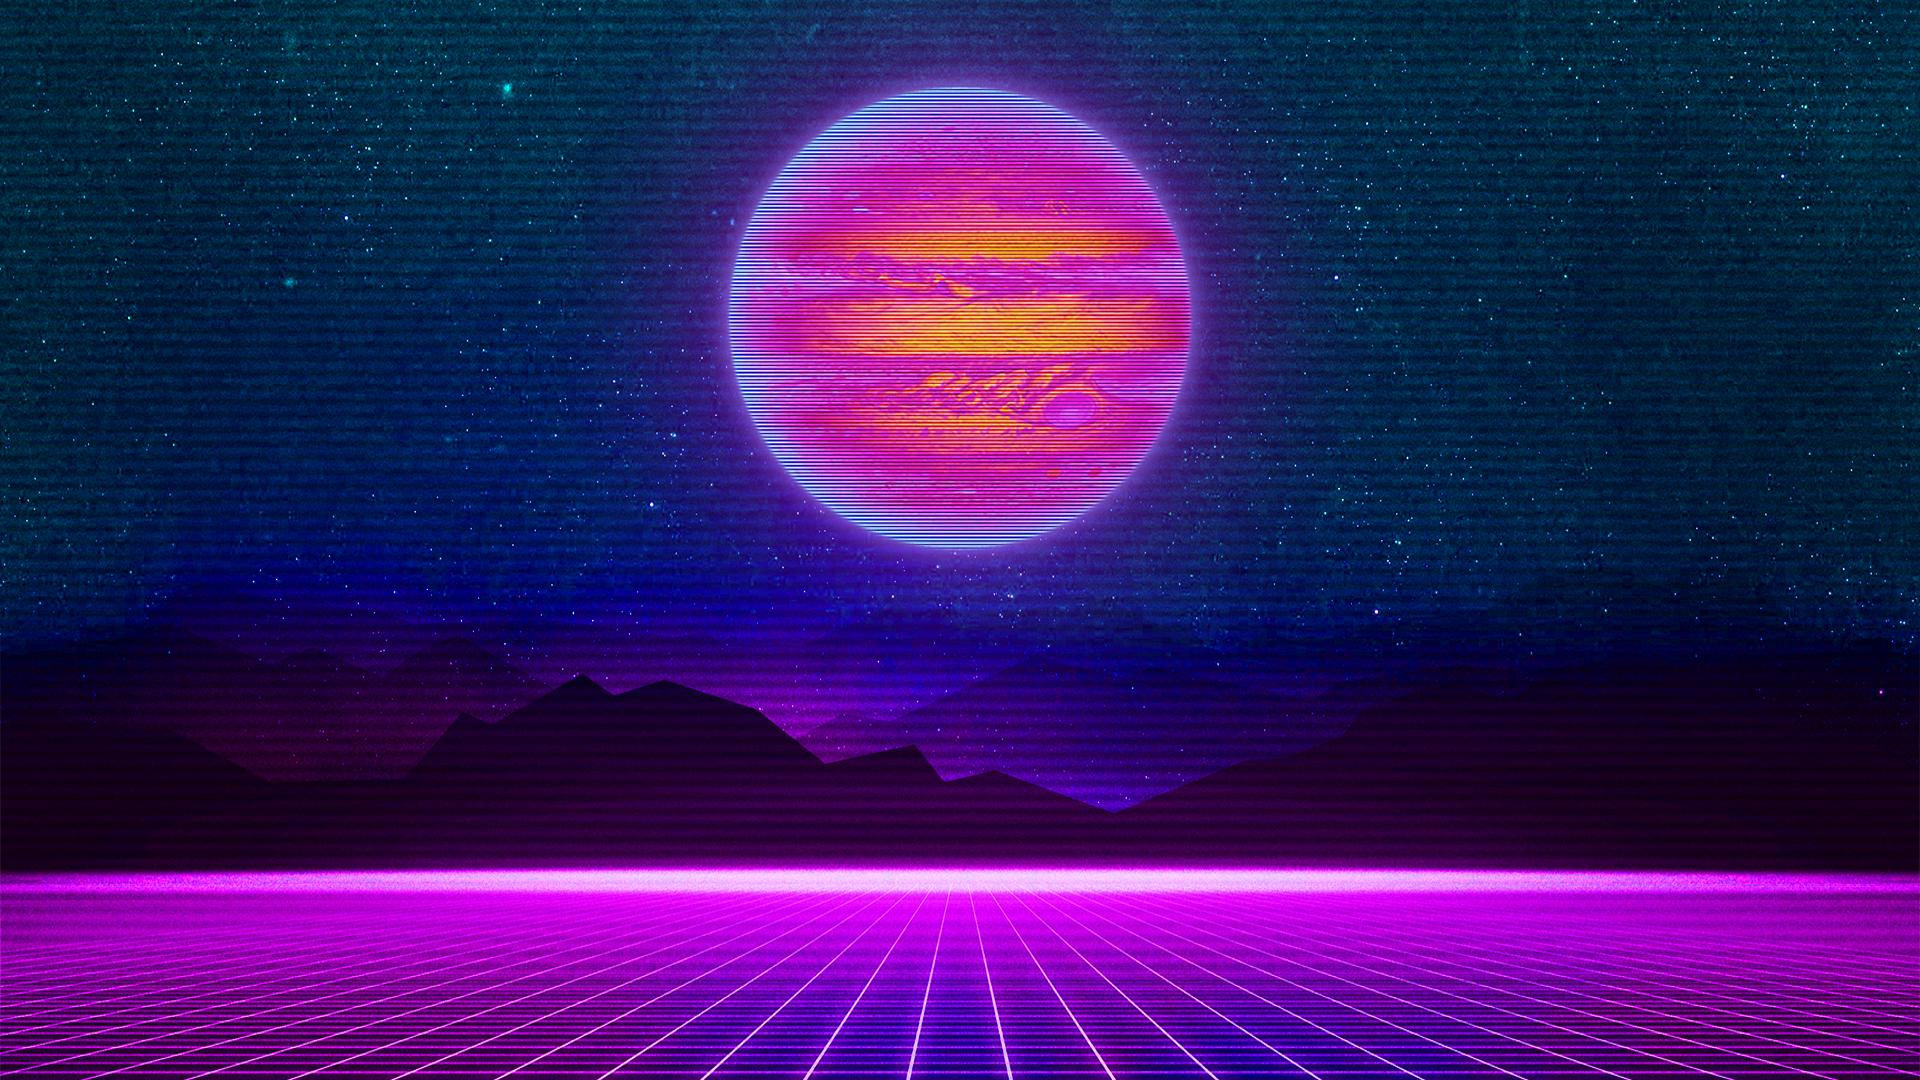 Retro Wave Wallpapers Top Free Retro Wave Backgrounds Wallpaperaccess